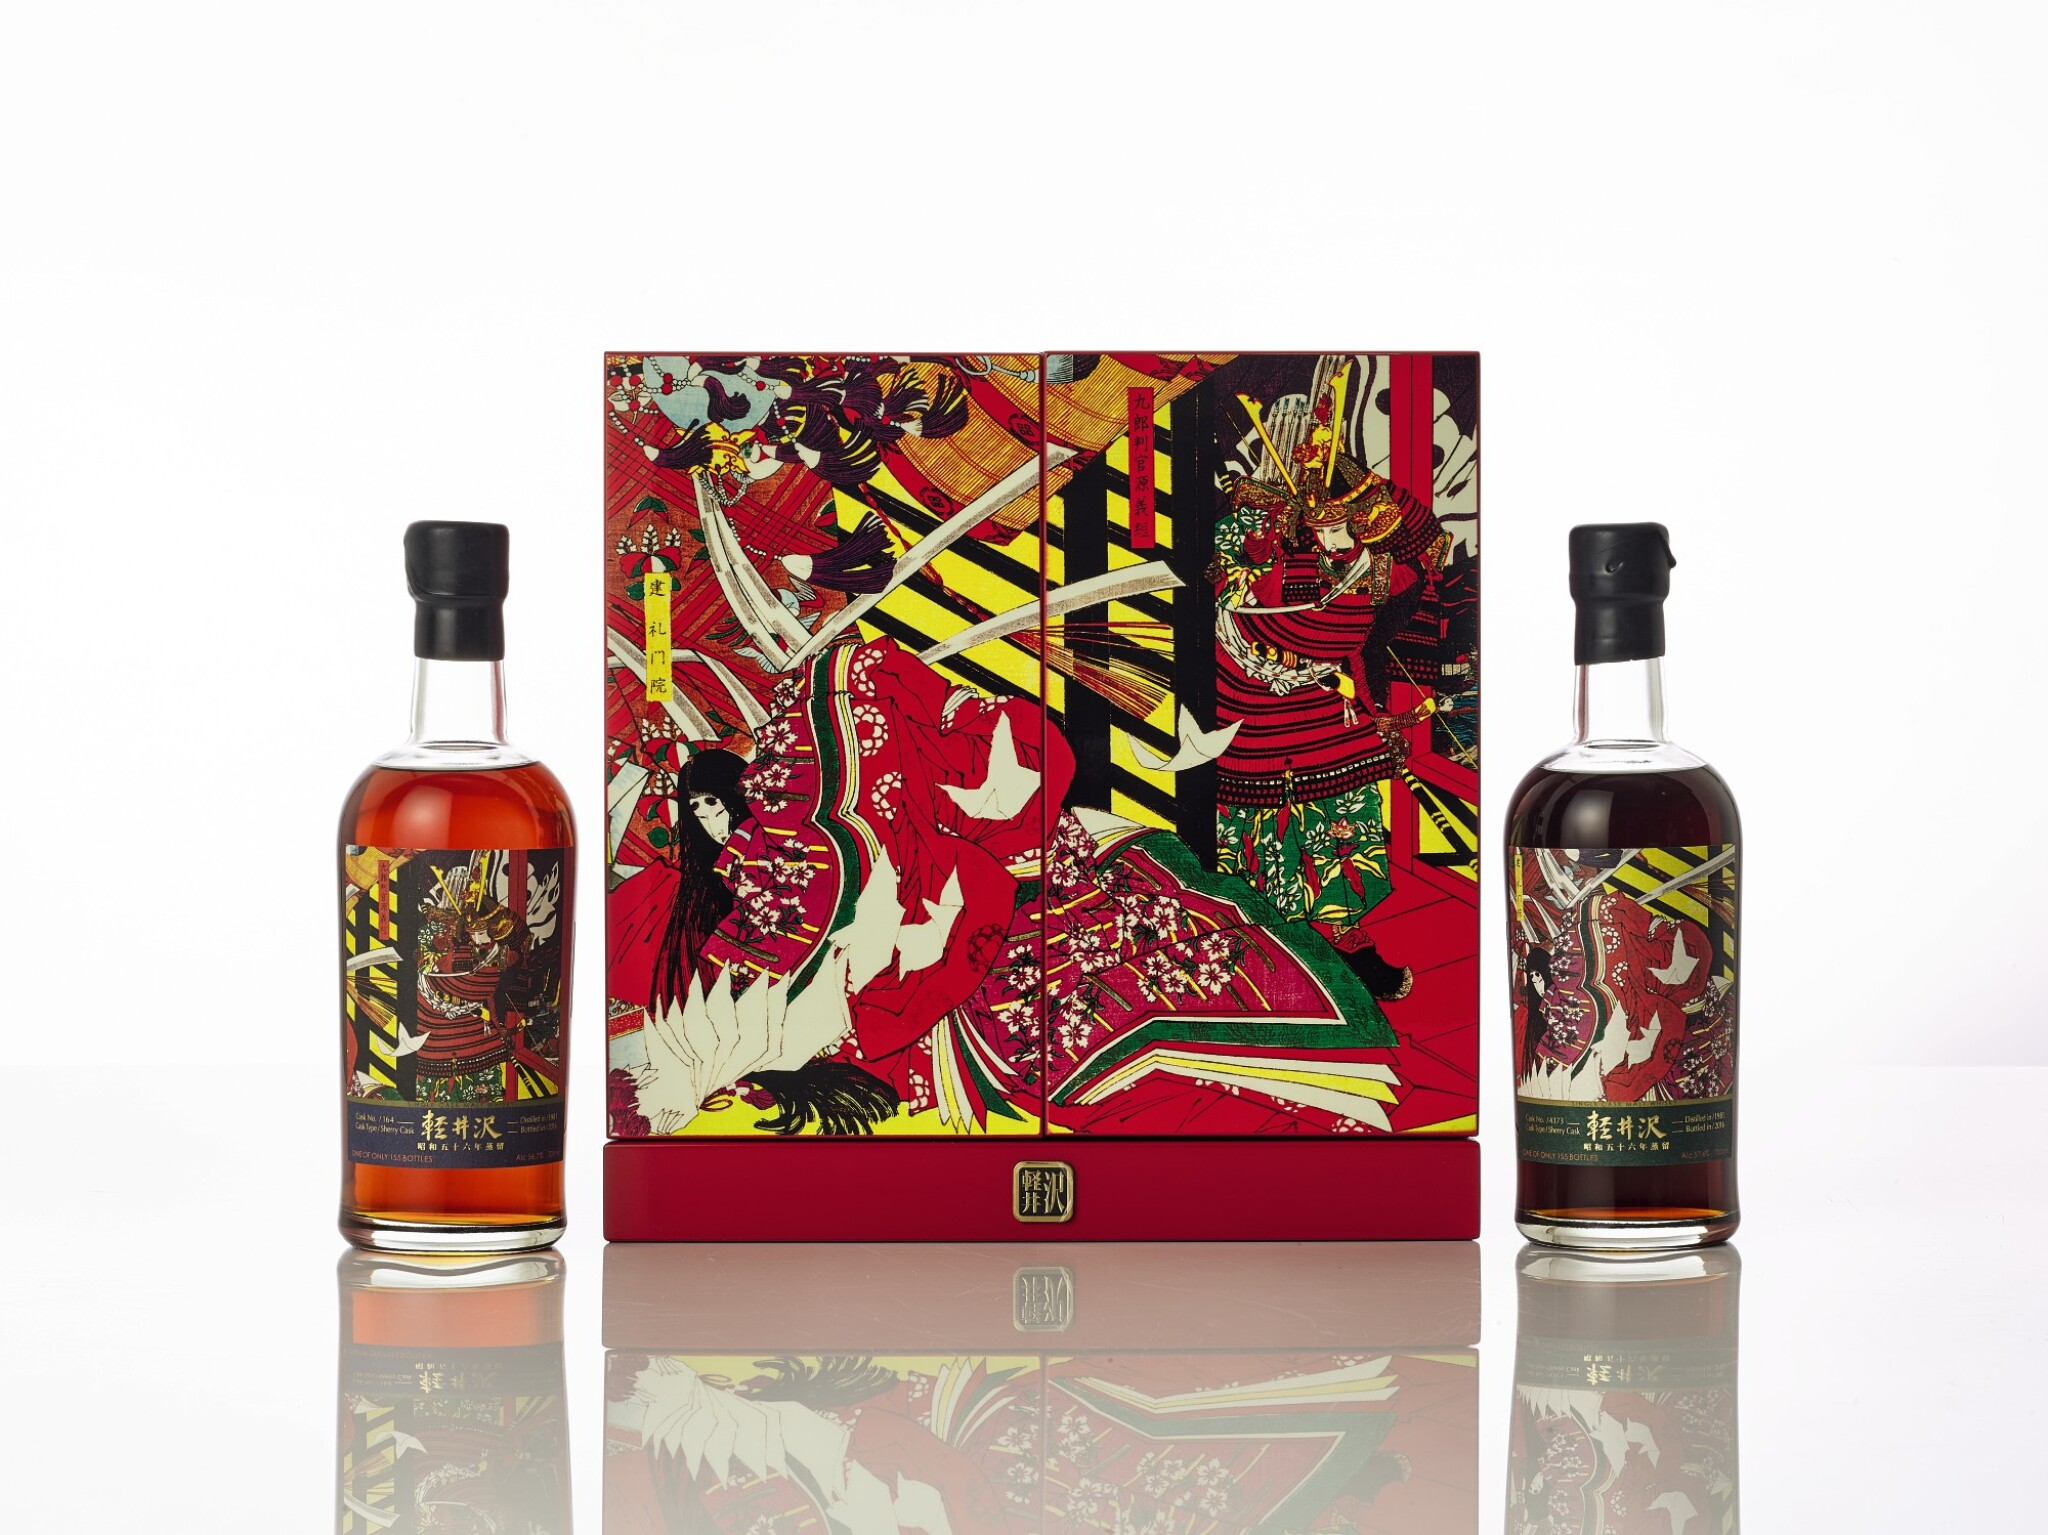 """View full screen - View 1 of Lot 5454. 輕井澤 屋島之戰 Karuizawa 35 Year Old Cask #164 and #4373 """"The Great Battle Of Yashima"""" 1981 (2 BT70)."""